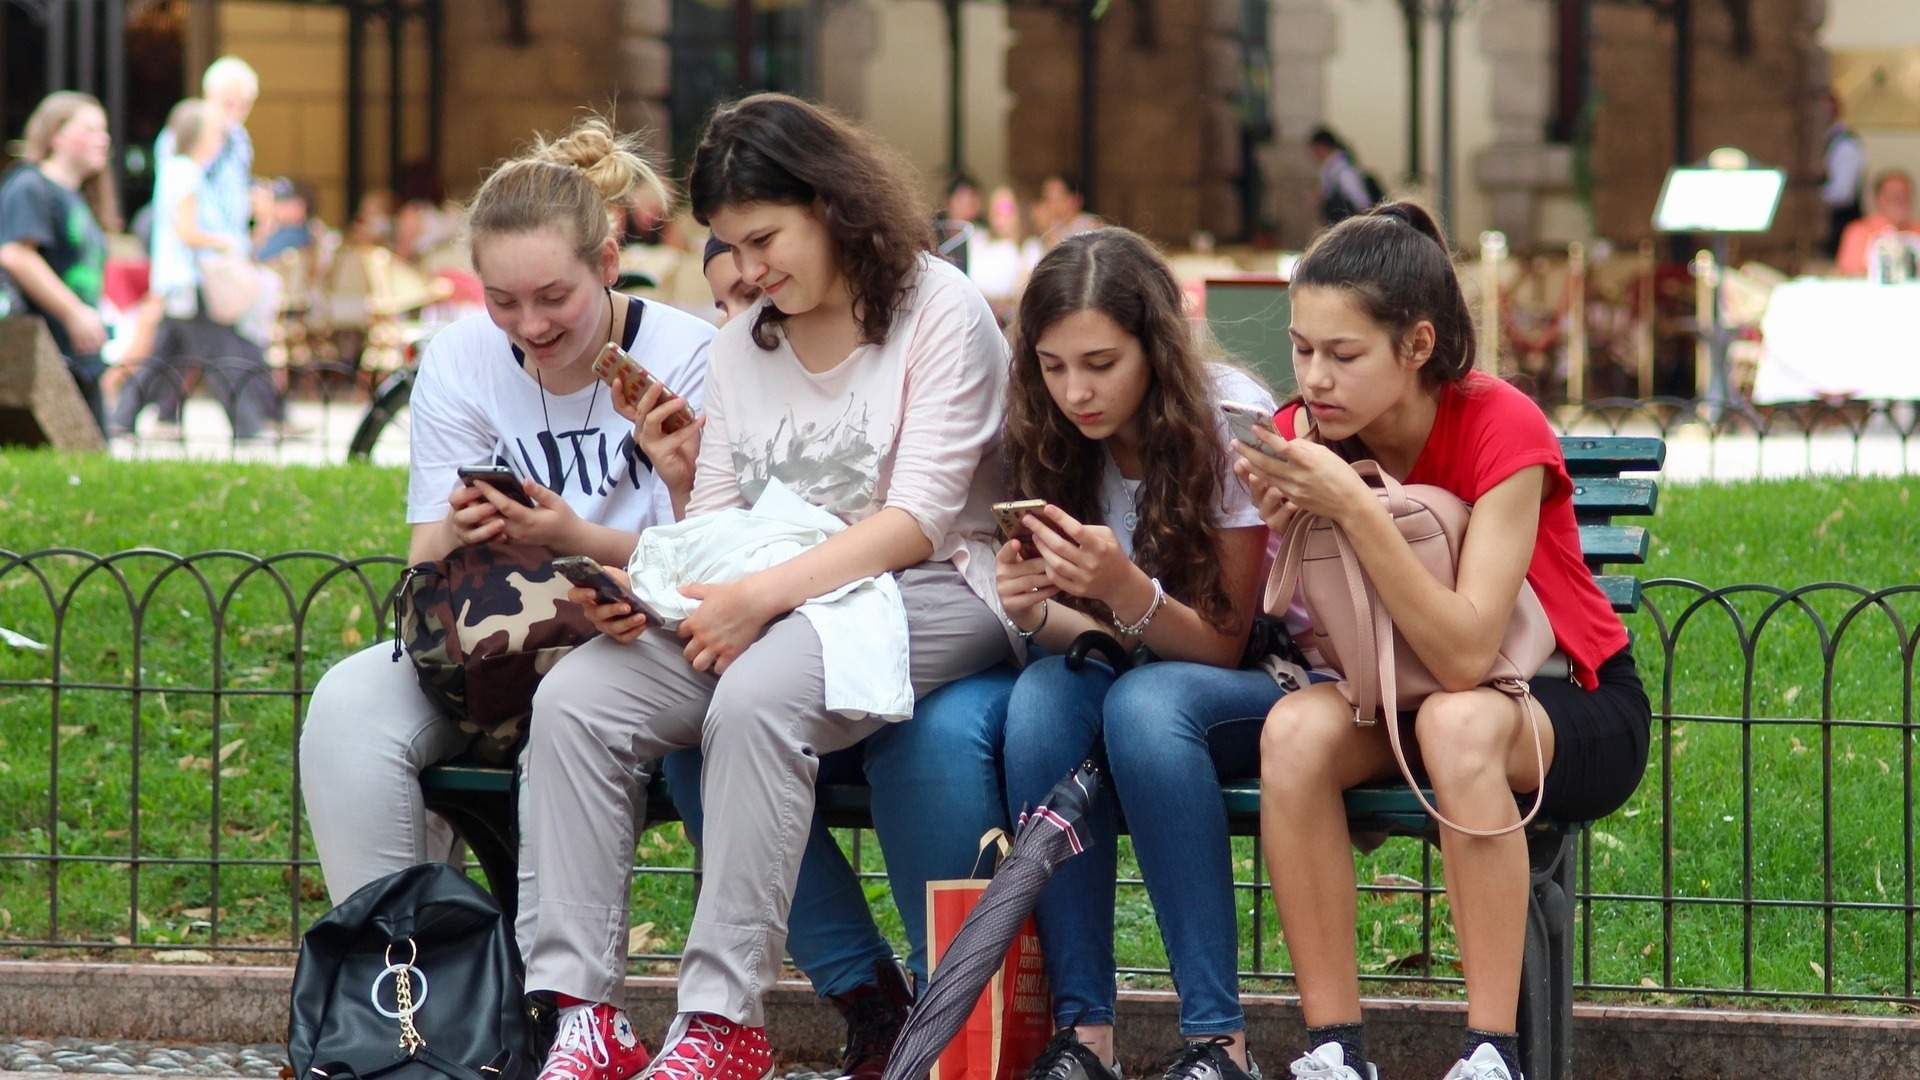 A group of friends sitting on a bench whilst texting.